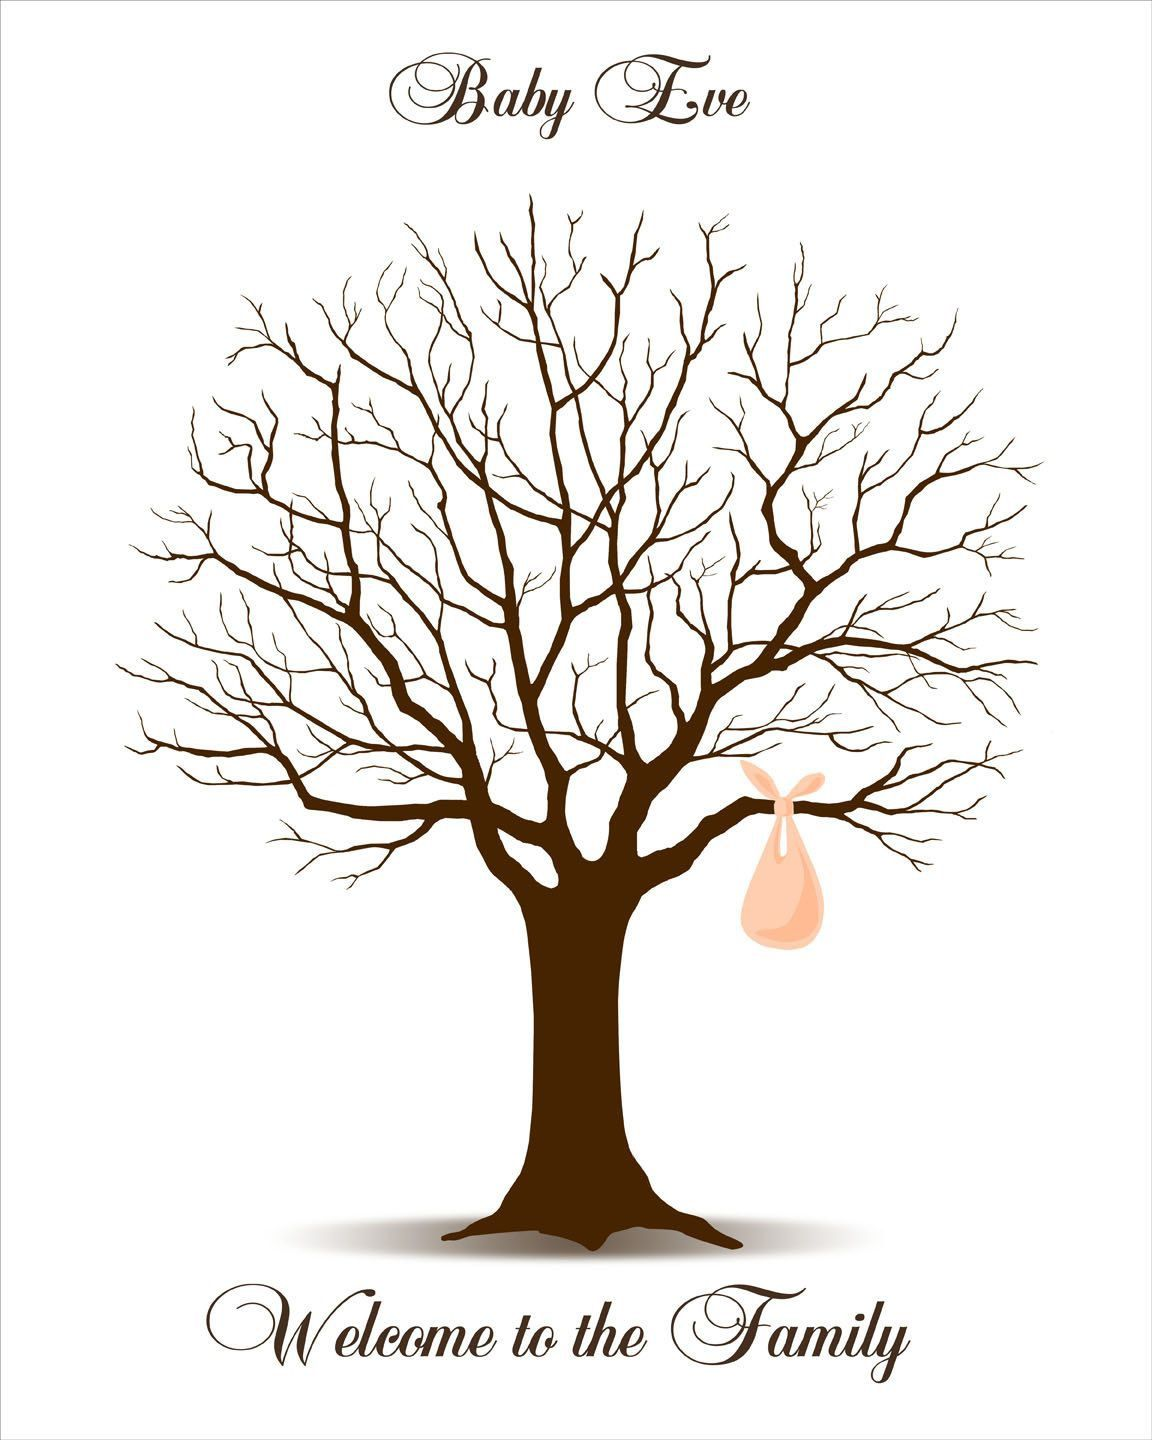 009 Rare Family Tree For Baby Book Template High Def  PrintableFull